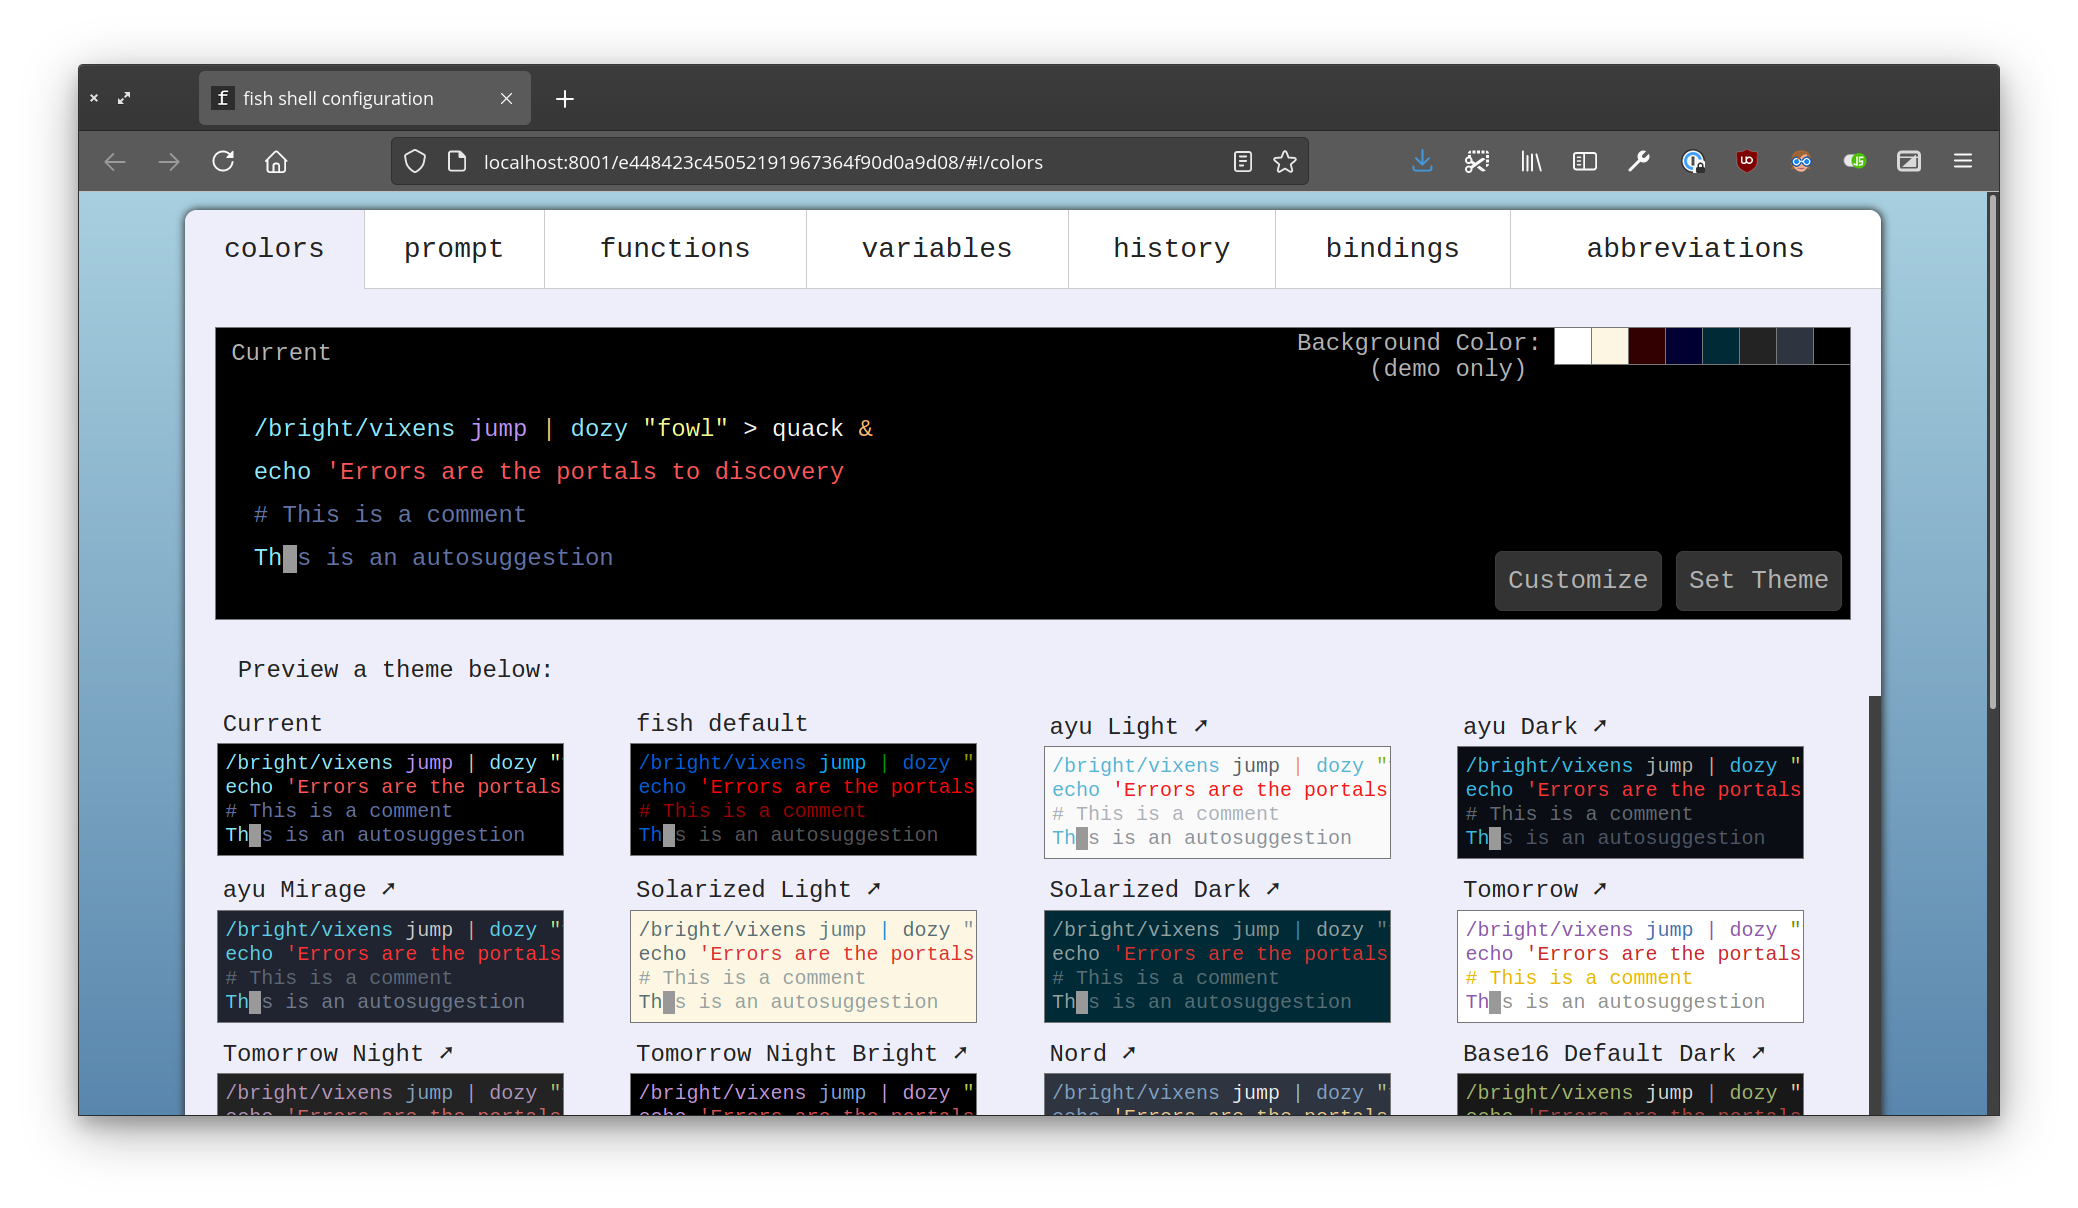 Screenshot of the web interface for fish_config, showing the  colors, prompt, functions, variables, history, bindings, and abbreviations tabs.